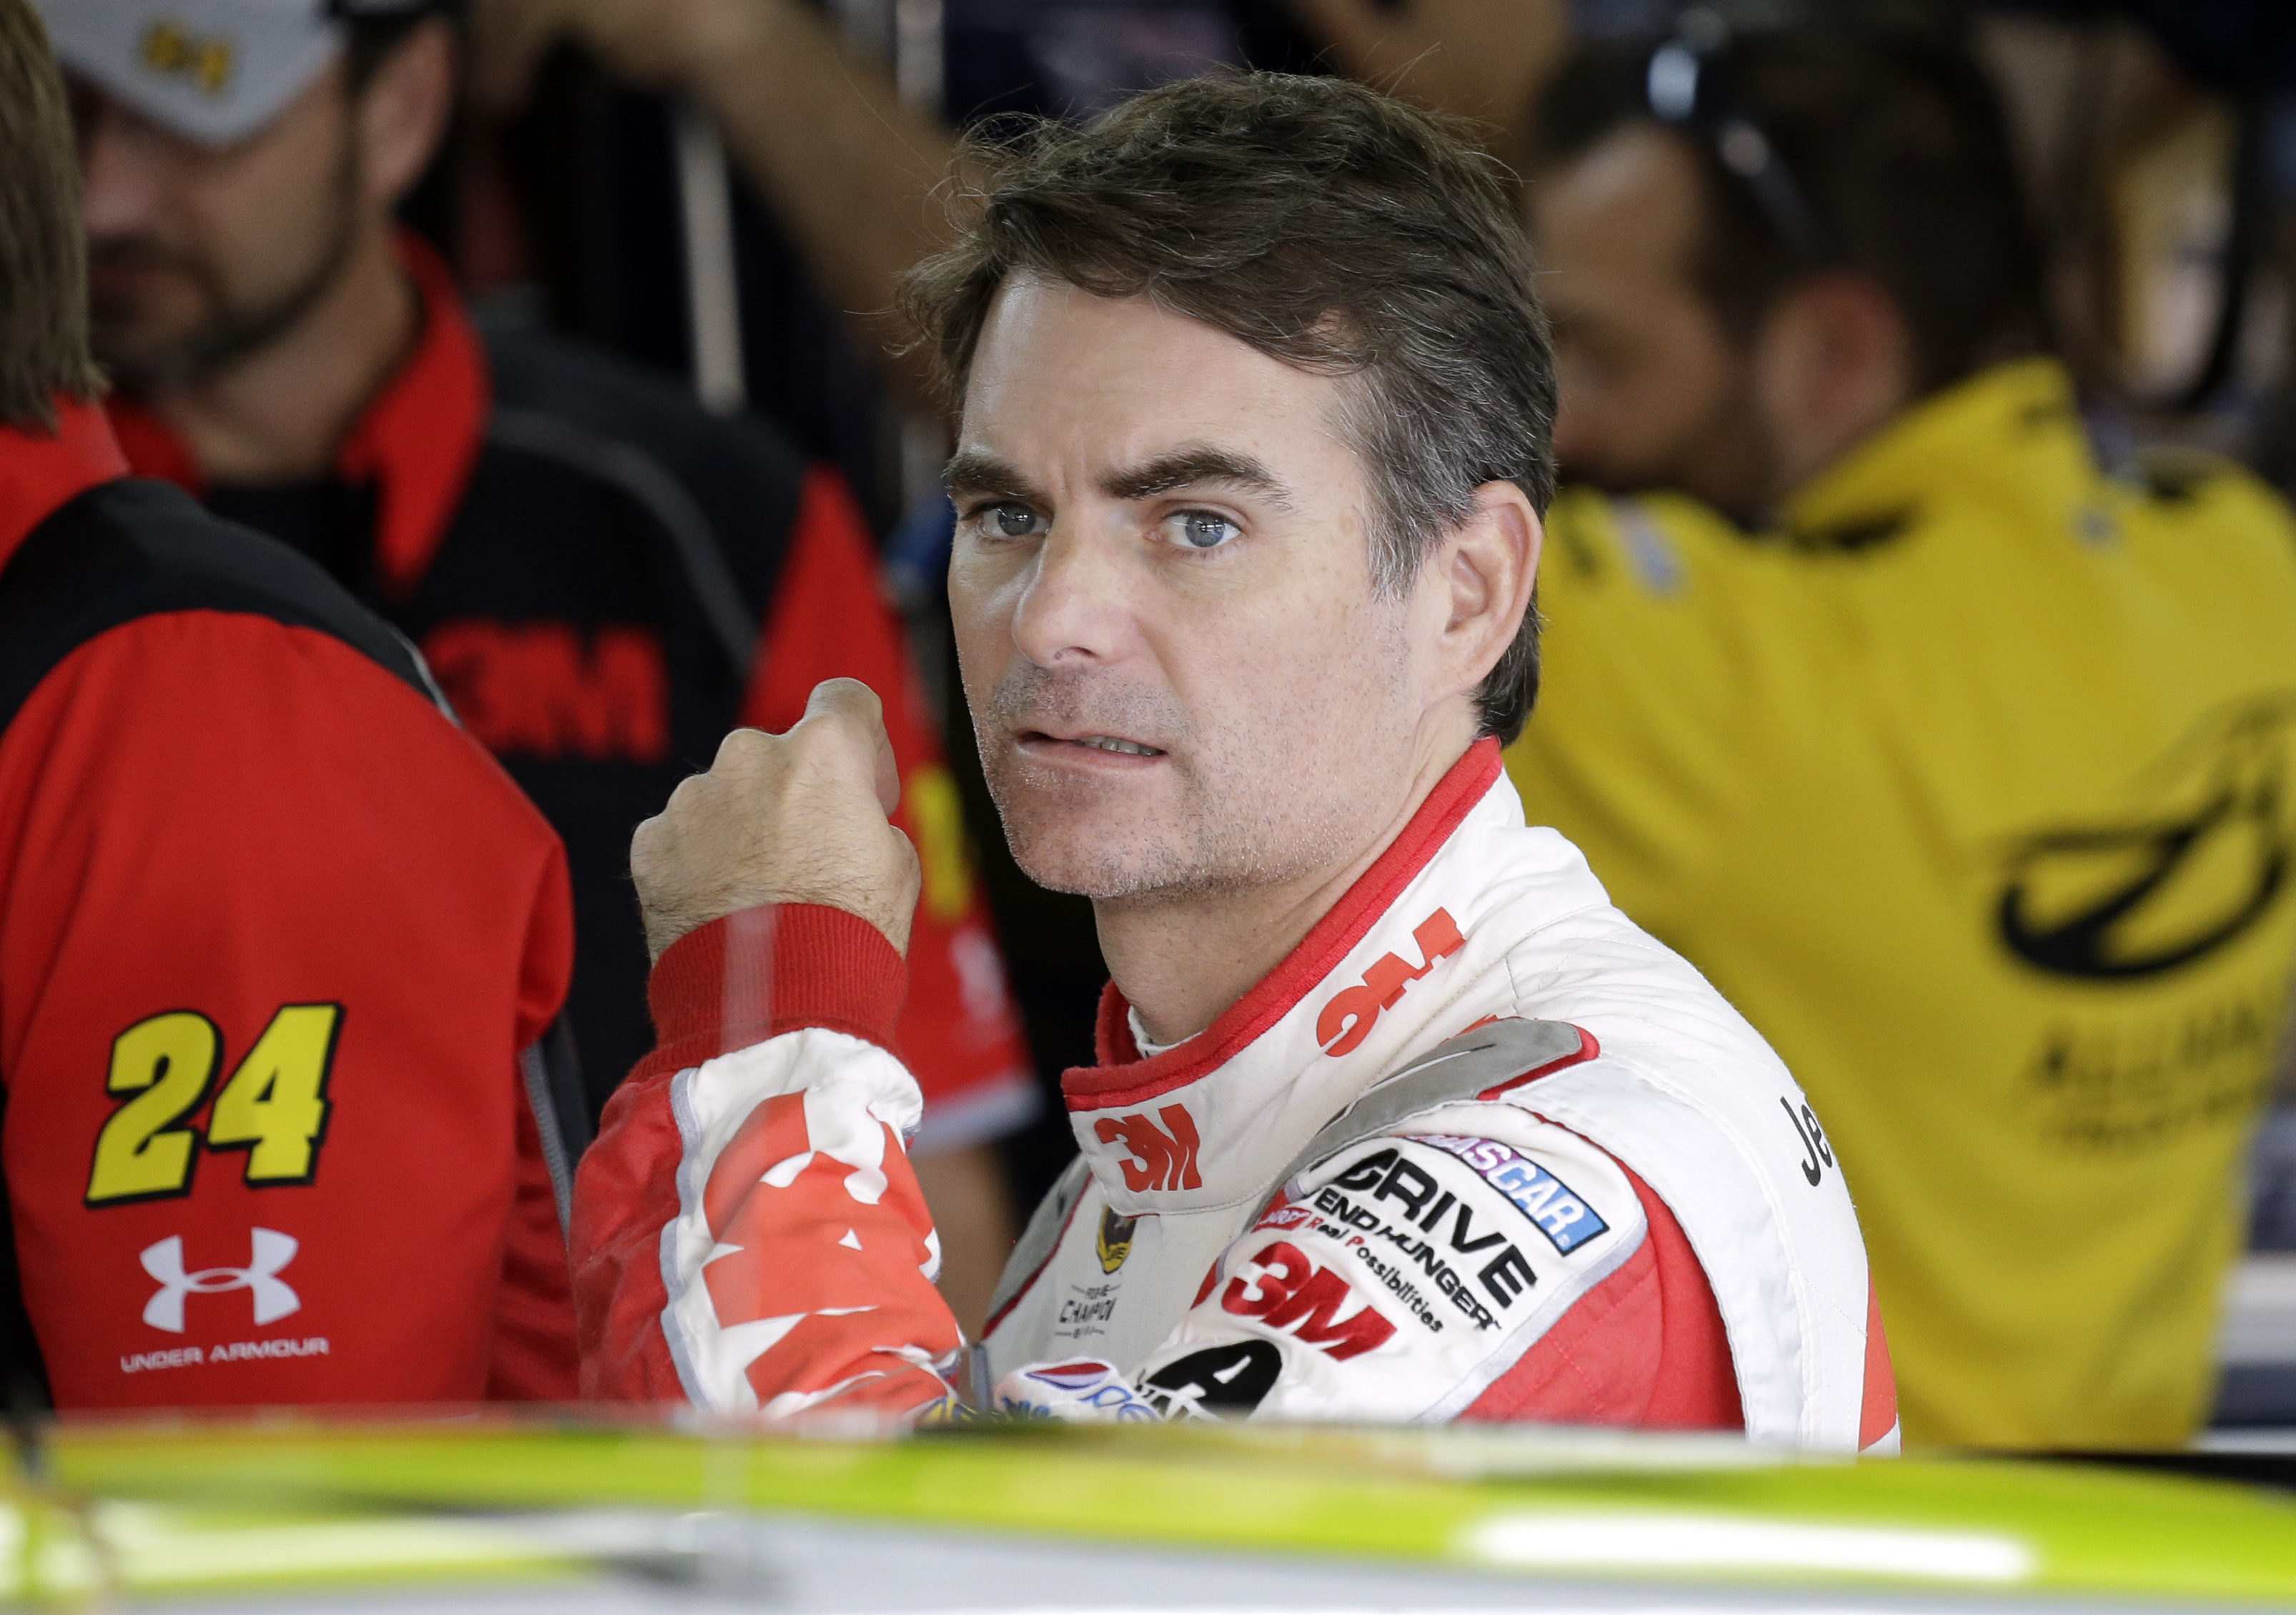 Jeff Gordon looks from the garage before practice for Saturday's NASCAR Sprint Cup series auto race at Charlotte Motor Speedway in Concord, N.C., Friday, Oct. 9, 2015. (AP Photo/Terry Renna)